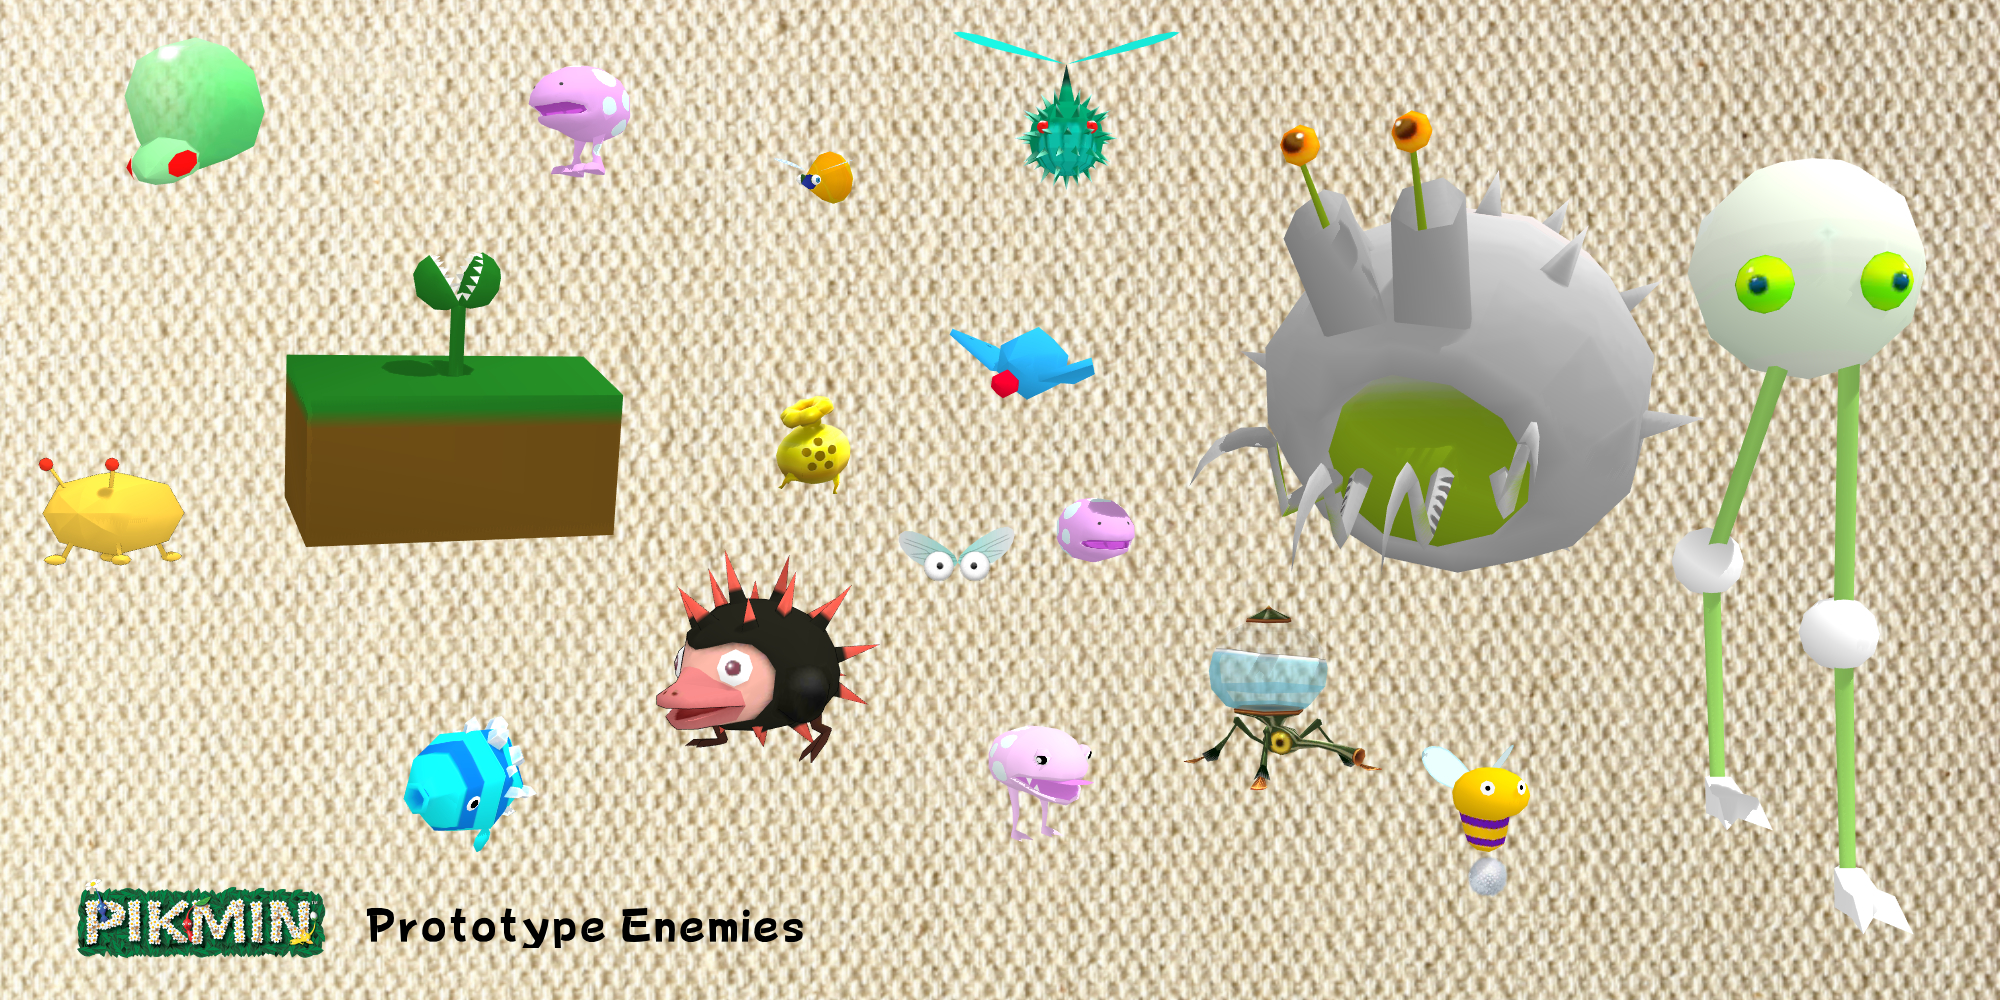 Mmd Dae Model Prototype Hey Pikmin Enemies Dl By Sab64 On Deviantart